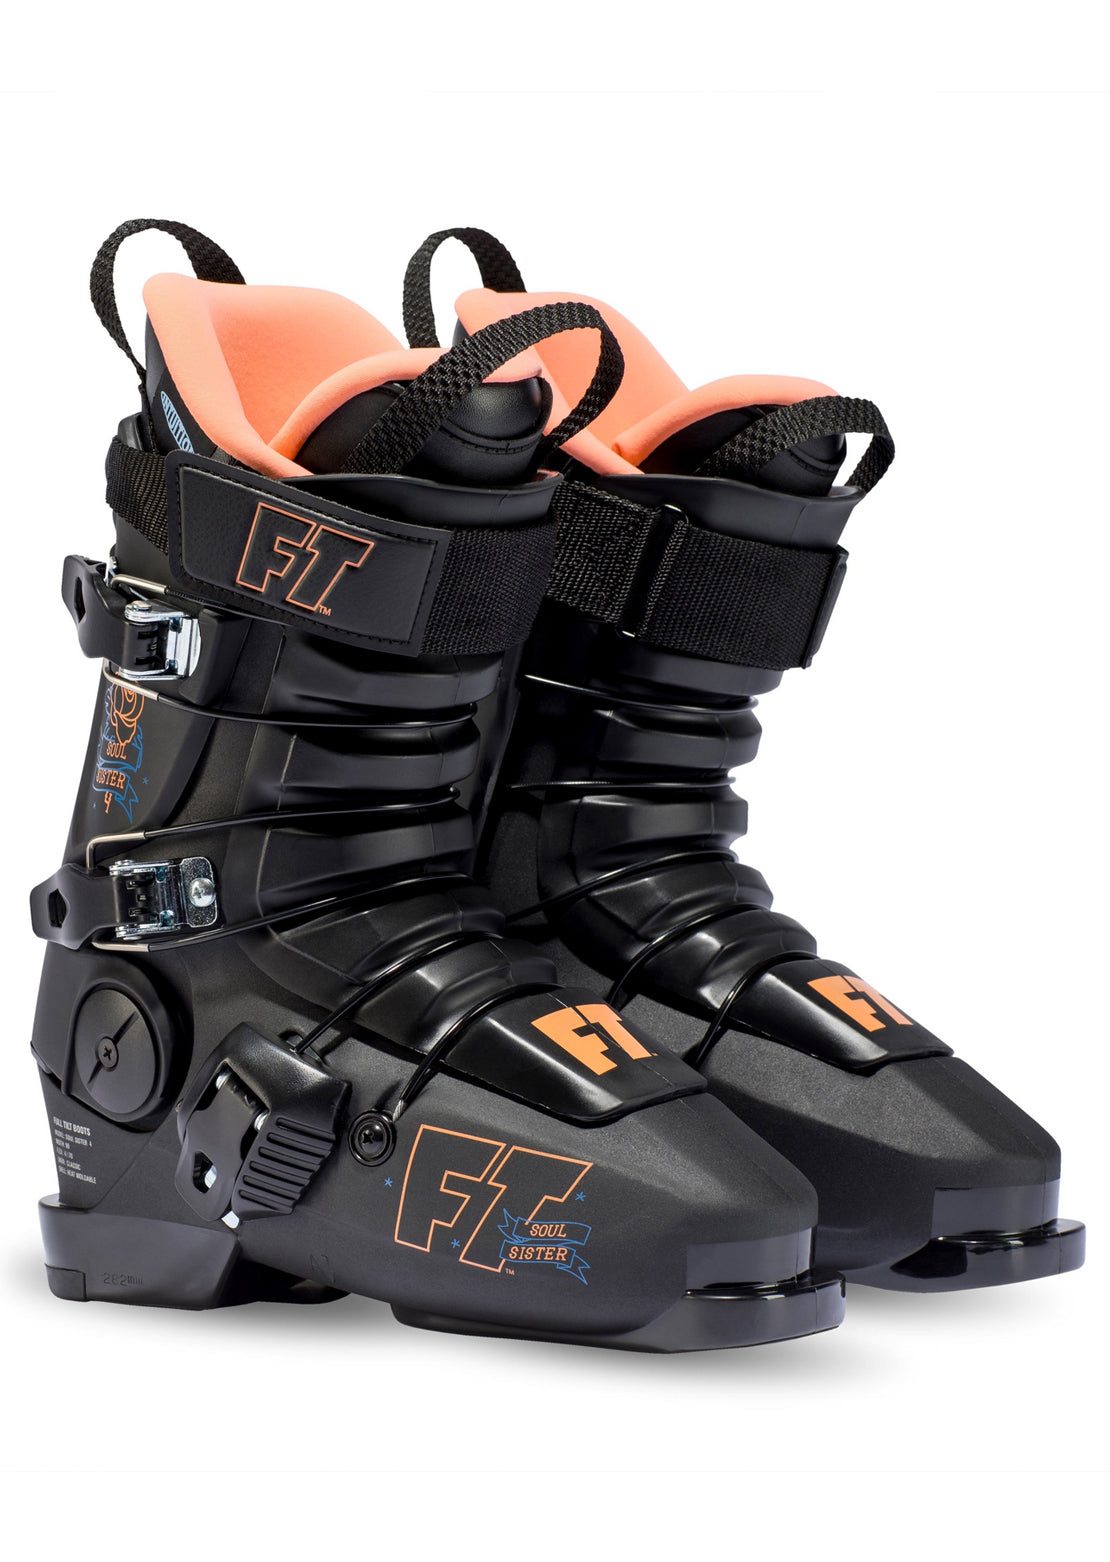 Full Tilt Women's Soul Sister 4 Ski Boot Black